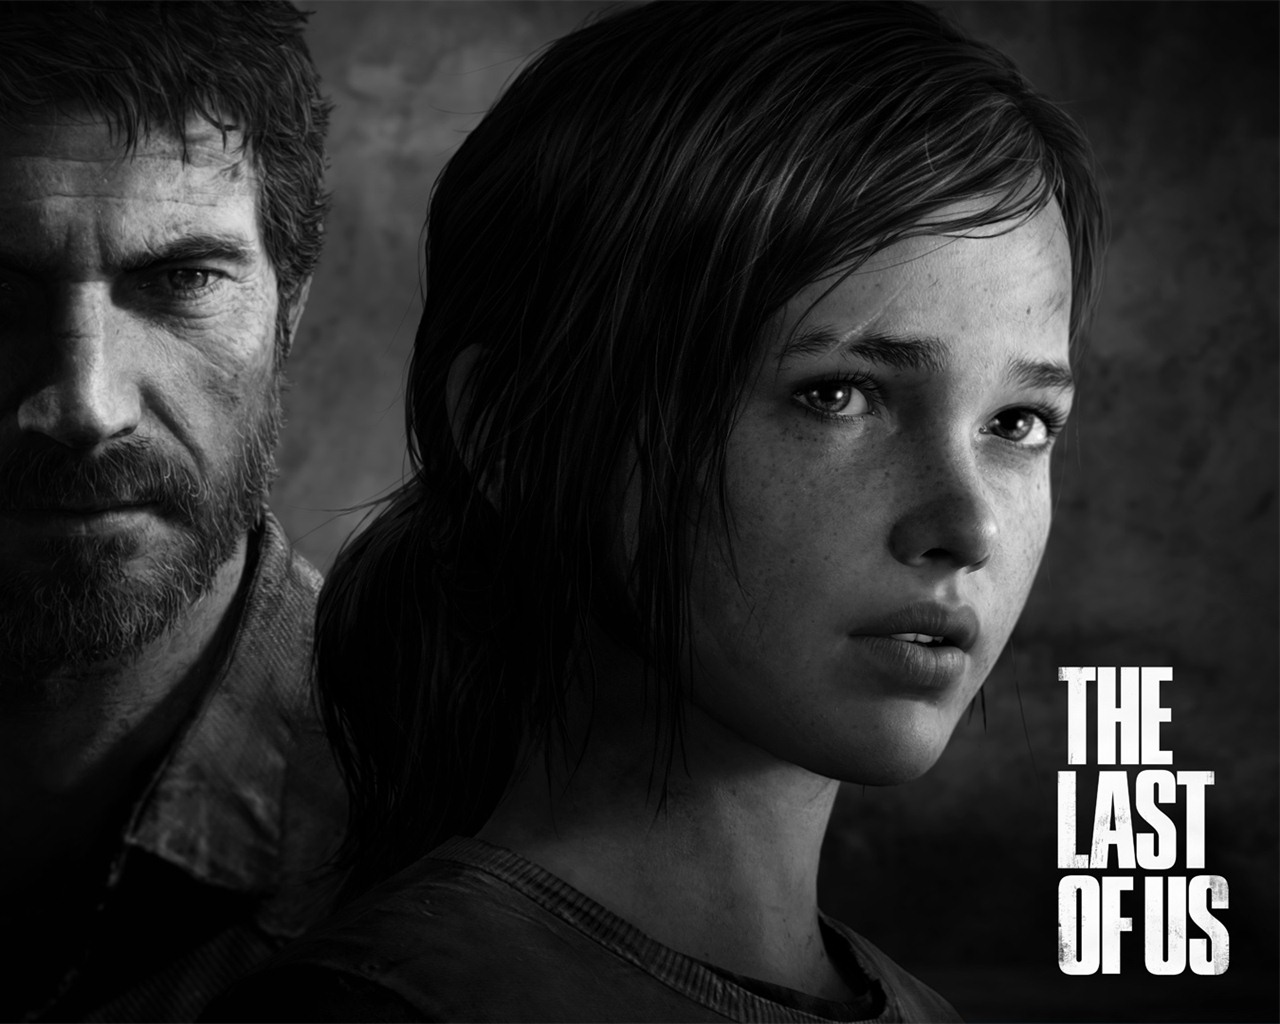 The Last of US HD game wallpapers #2 - 1280x1024